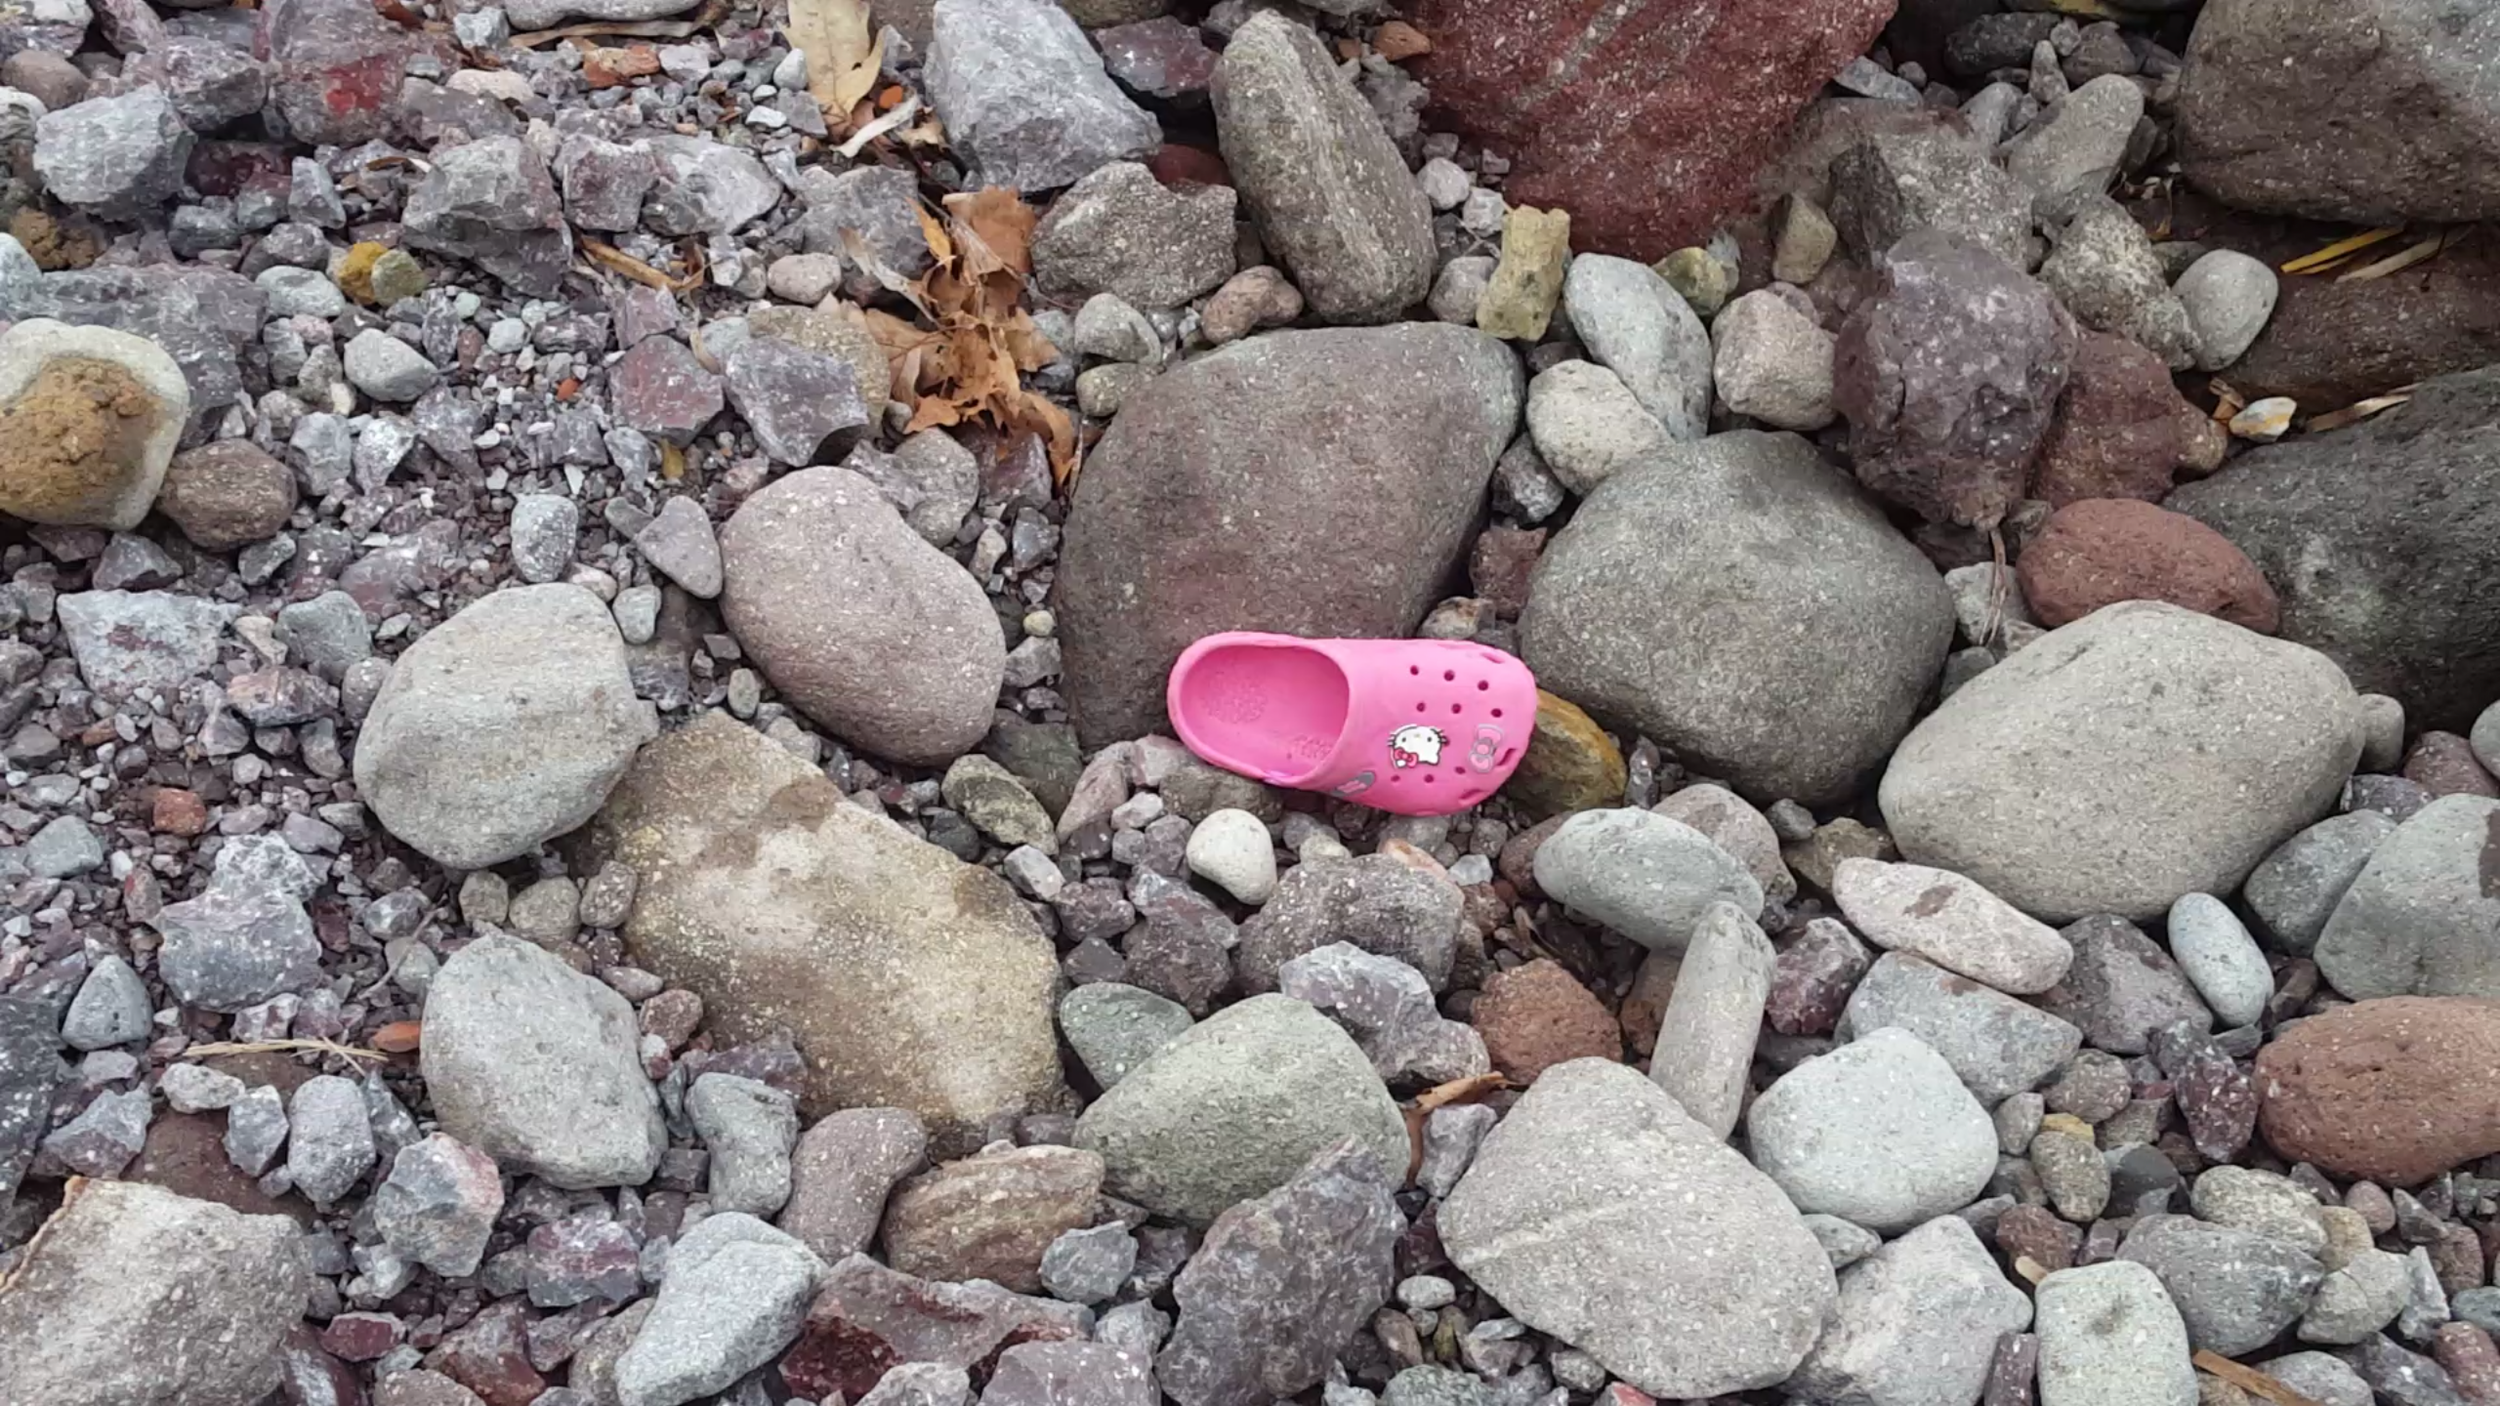 A photo of a child's pink Croc found on Lighthouse Beach where hundreds of thousands of refugees have come ashore on the Island of Lesvos, just a few feet away from the same body of water where thousands lost their lives trying to reach Europe, has become a symbol for us.